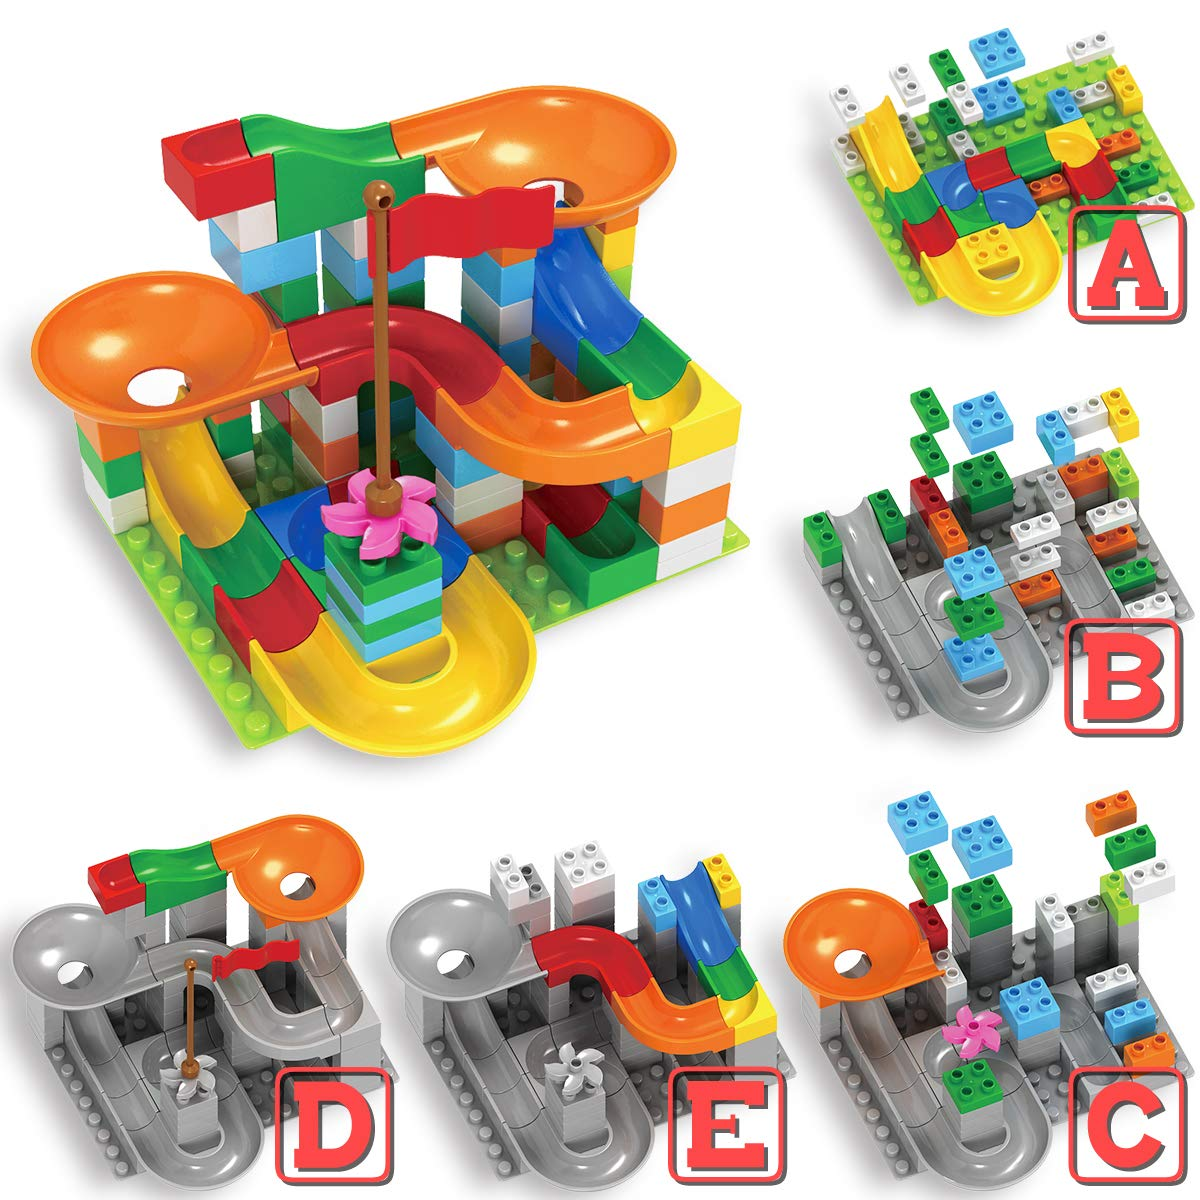 Ranphykx Building Blocks Toys for Children Learning Colors with Marble Run for Kids Toy 90 Pieces